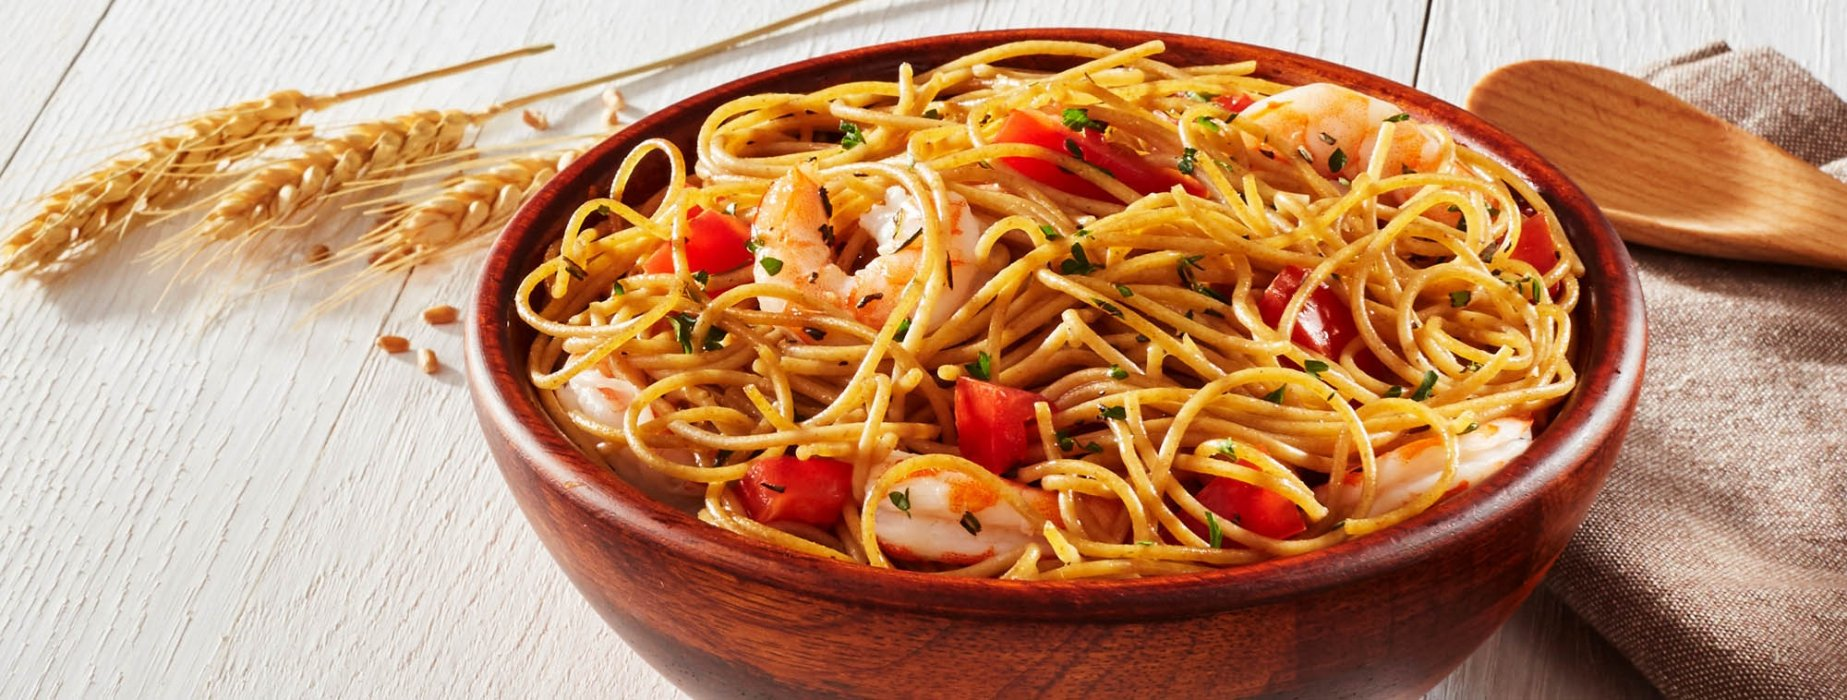 wooden bowl holding fresh food wheat noodles with tomatoes and shrimps